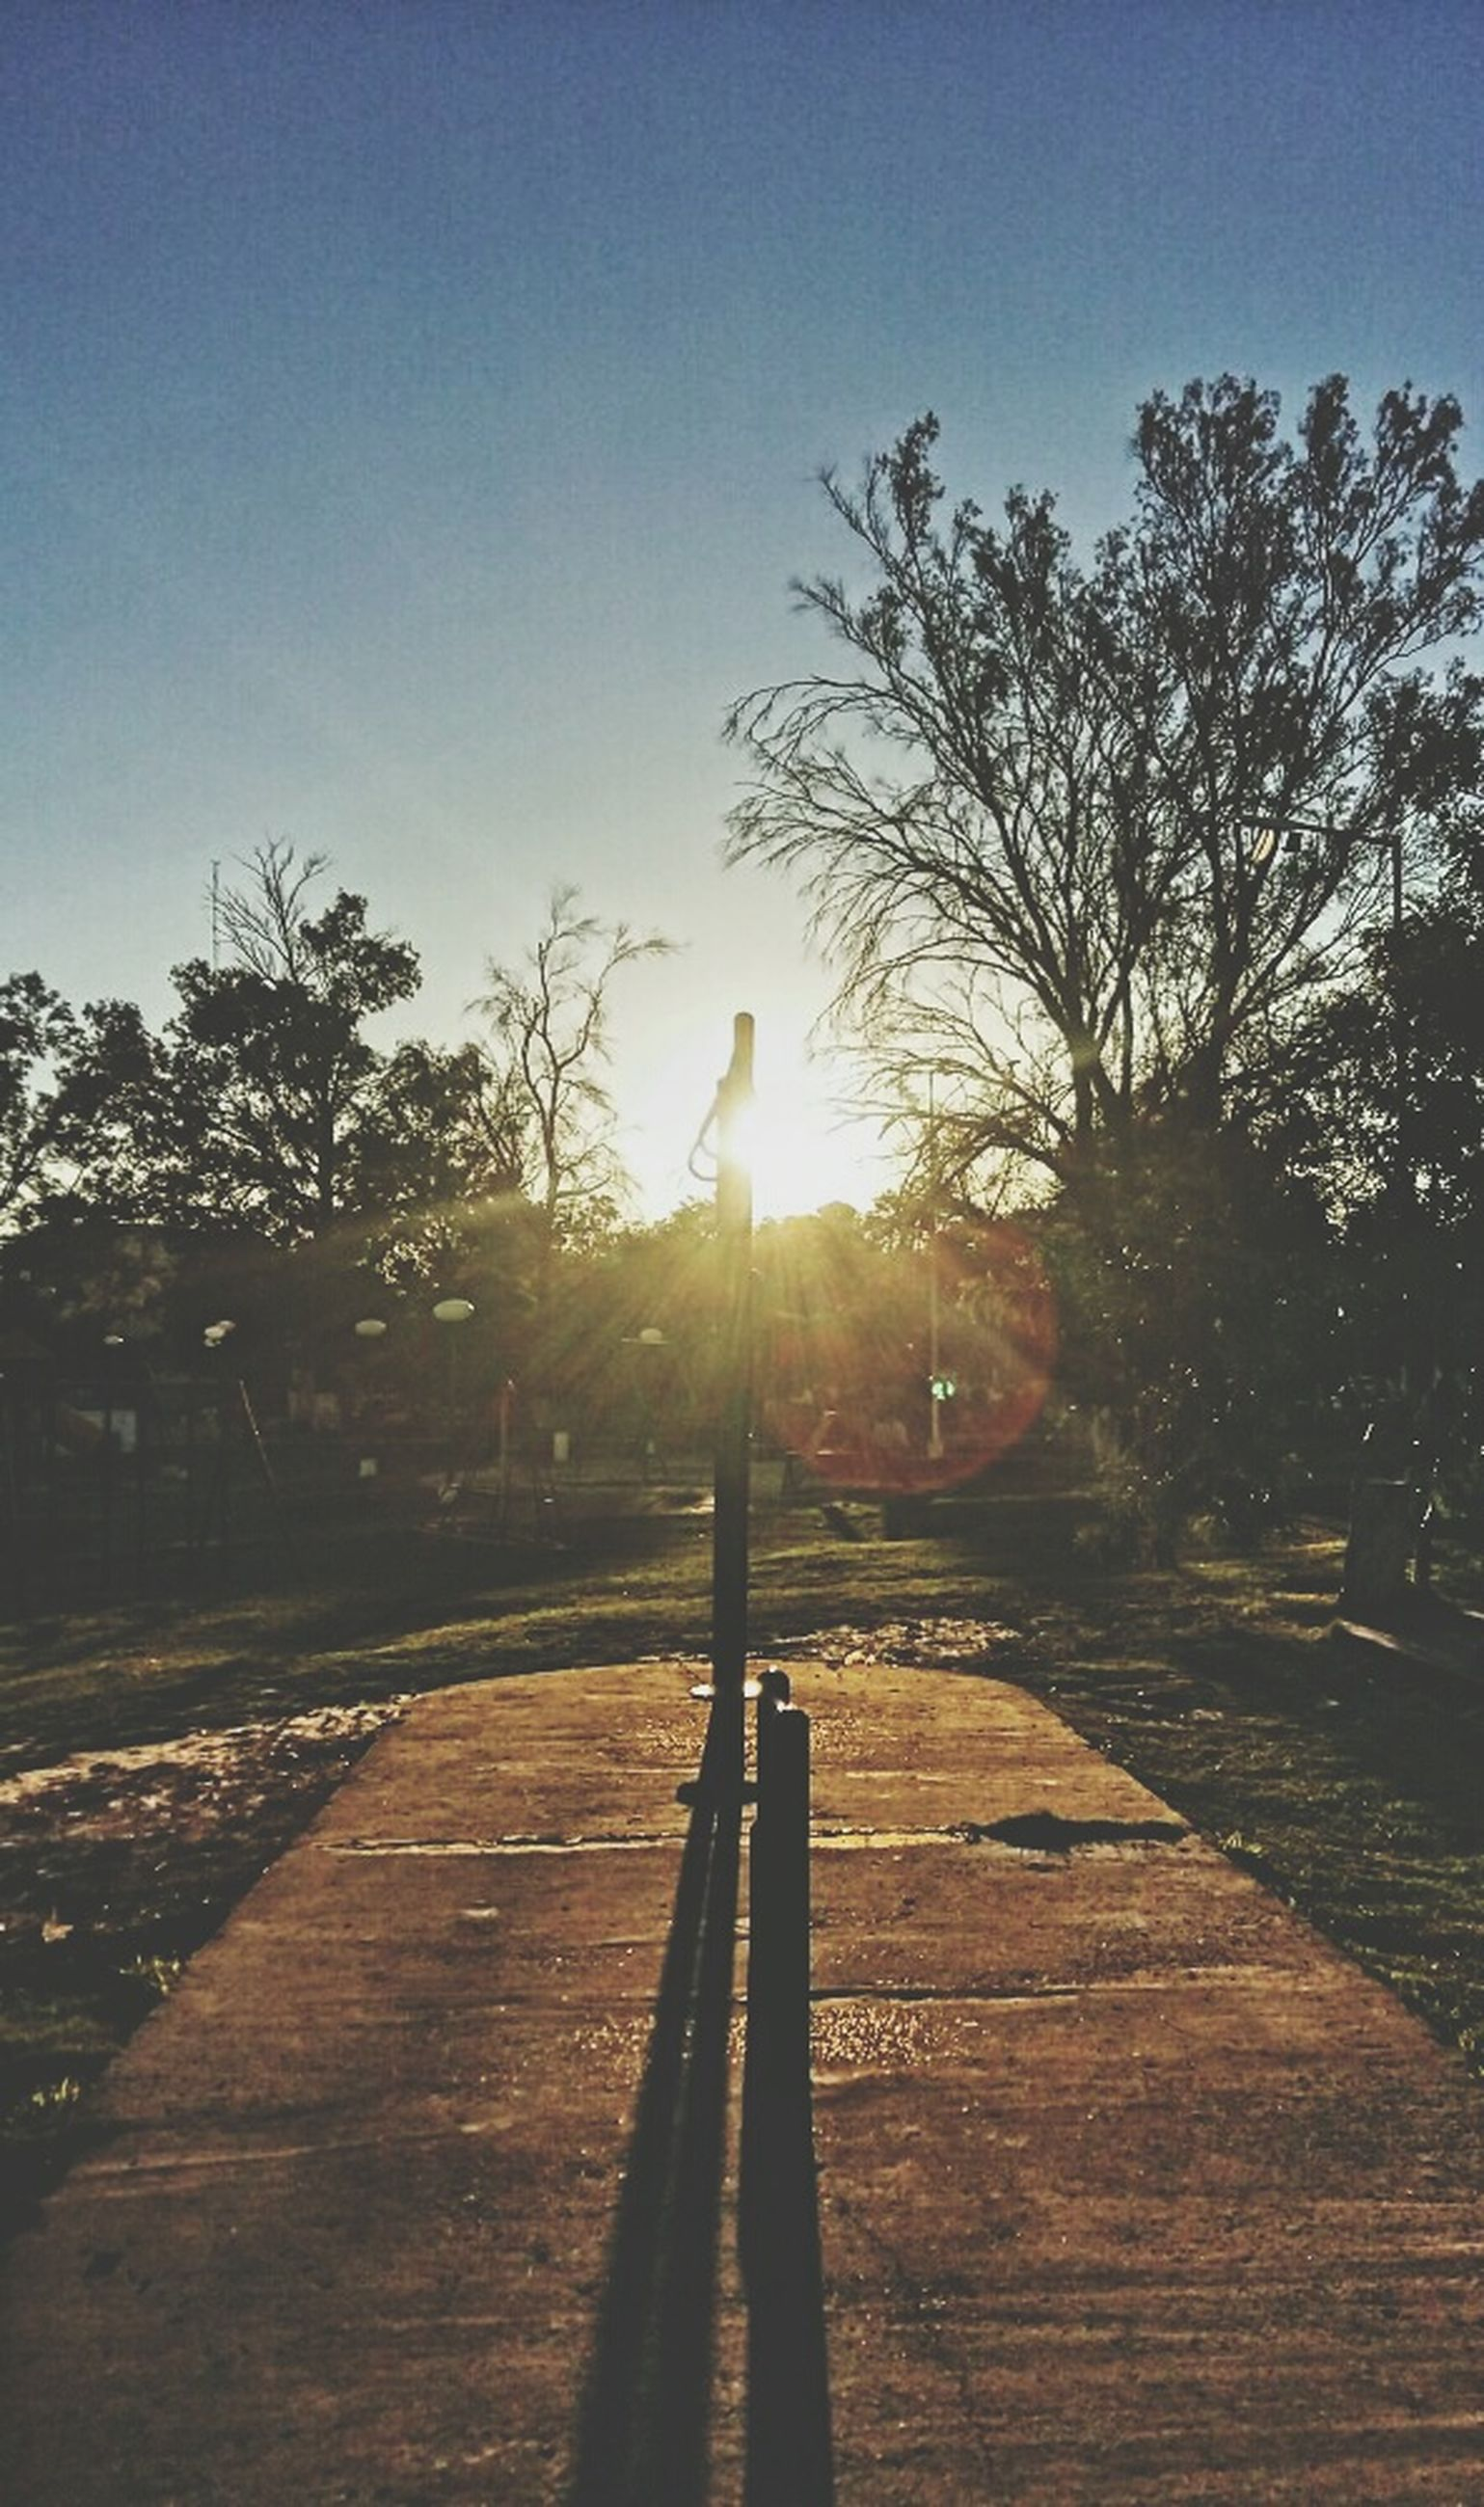 sun, tree, sunlight, the way forward, sunset, sunbeam, clear sky, lens flare, tranquility, tranquil scene, sky, shadow, nature, silhouette, transportation, road, diminishing perspective, empty, landscape, vanishing point